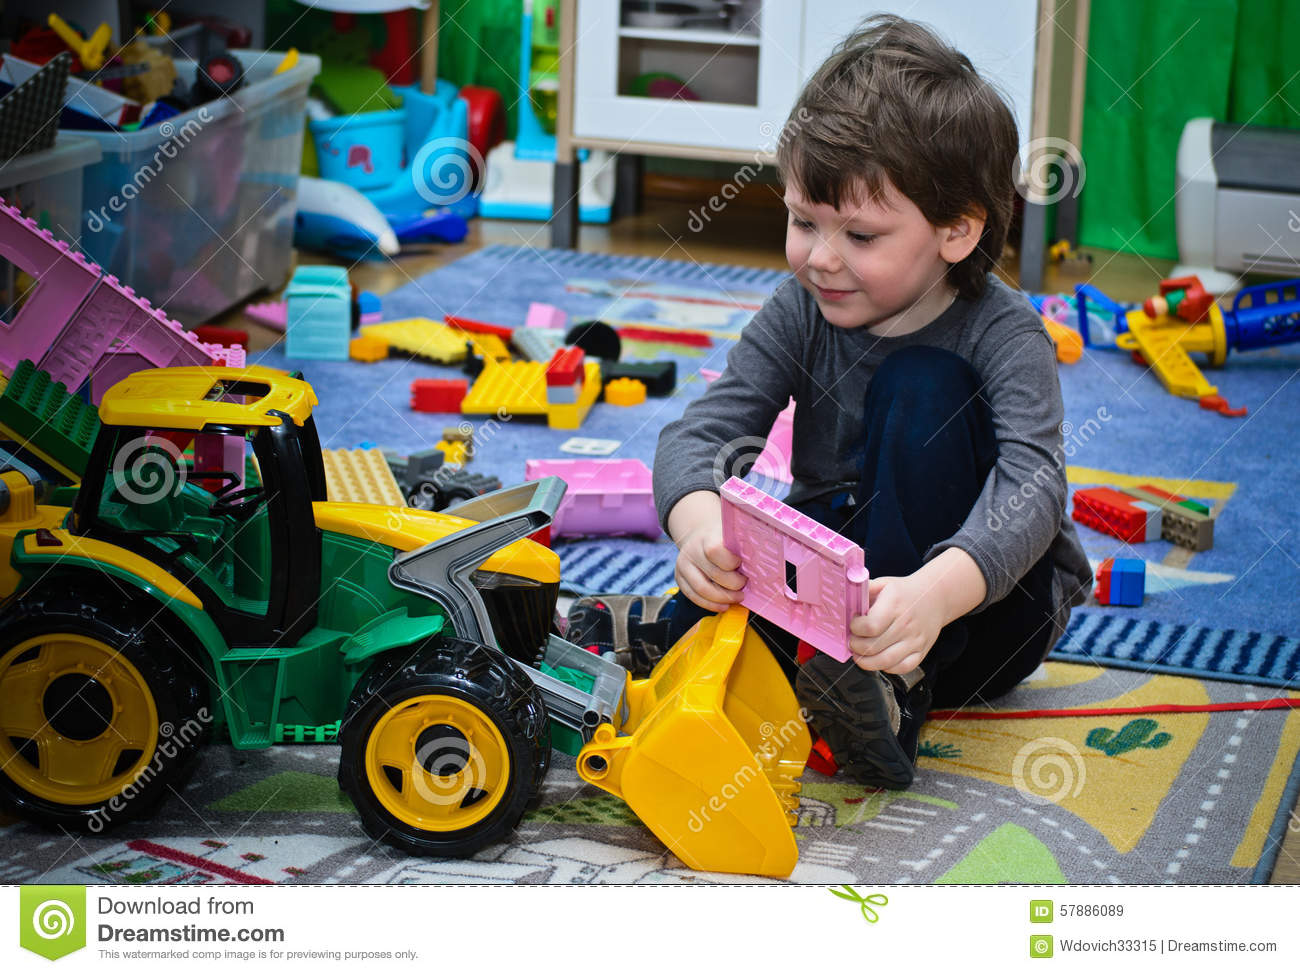 Tractor Toys For Boys : The kid and his toy tractor stock image